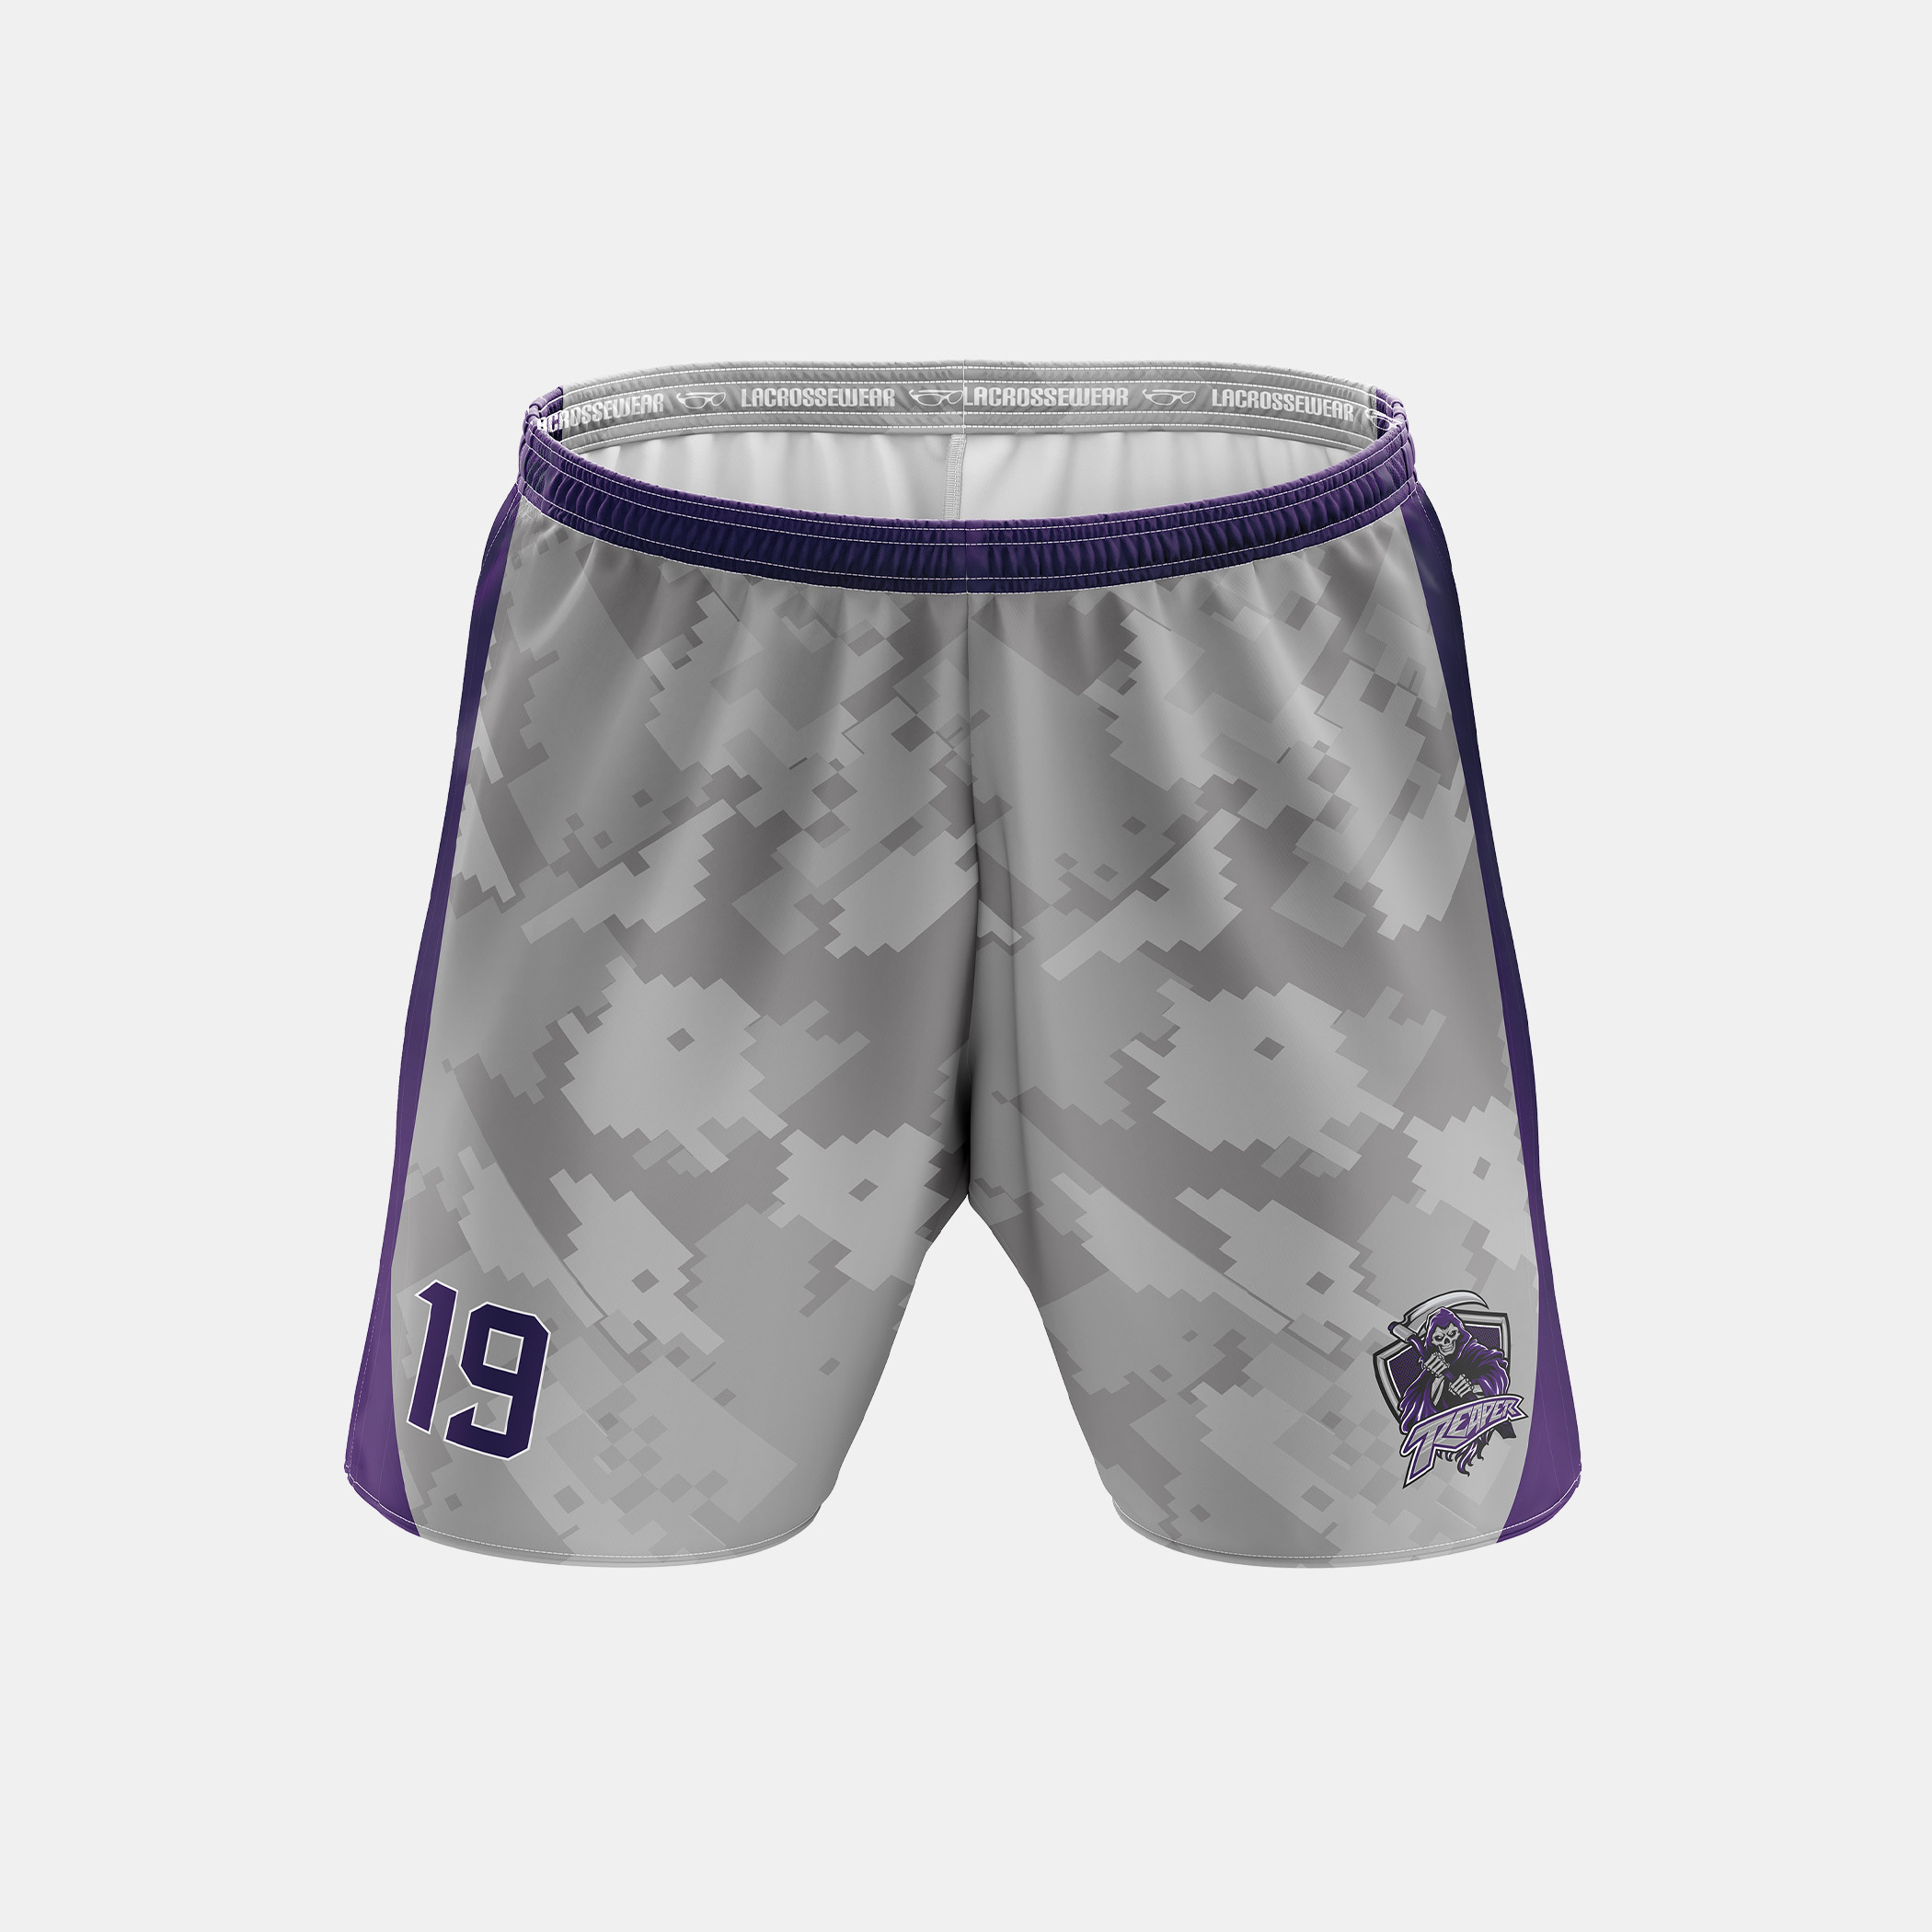 Reaper Lax Shorts Front View